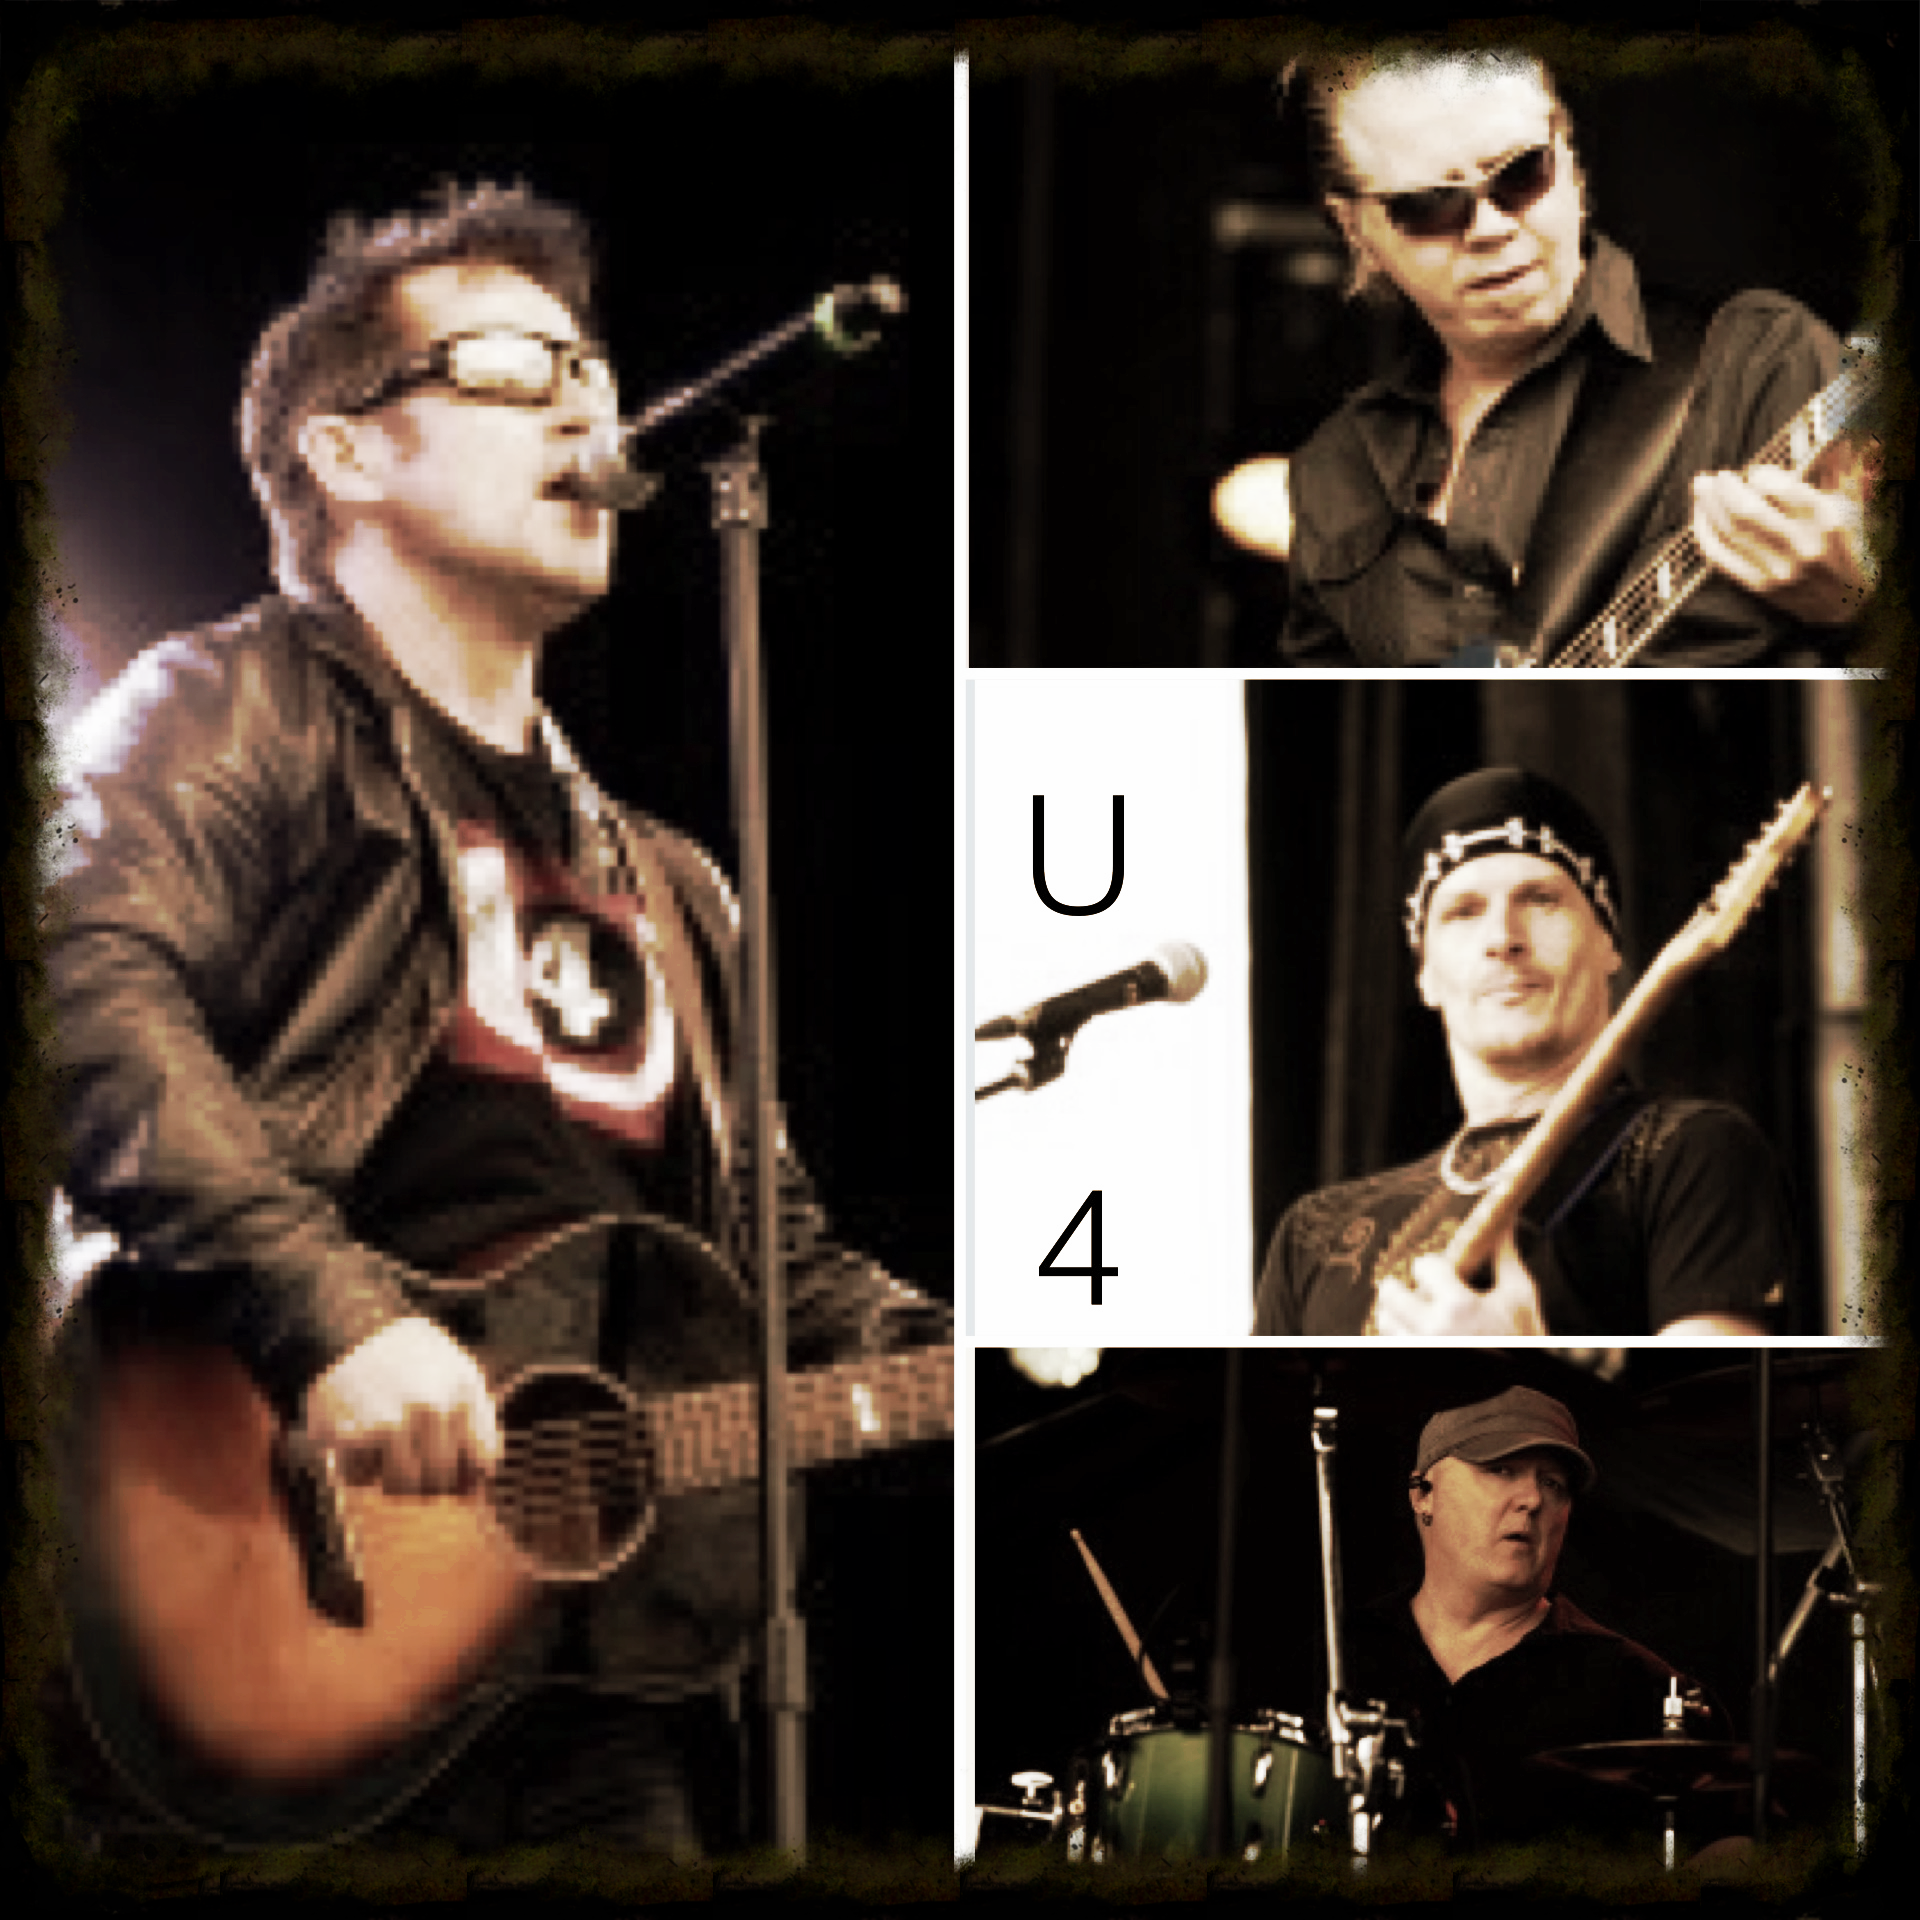 U4: Canada's U2 Tribute Band